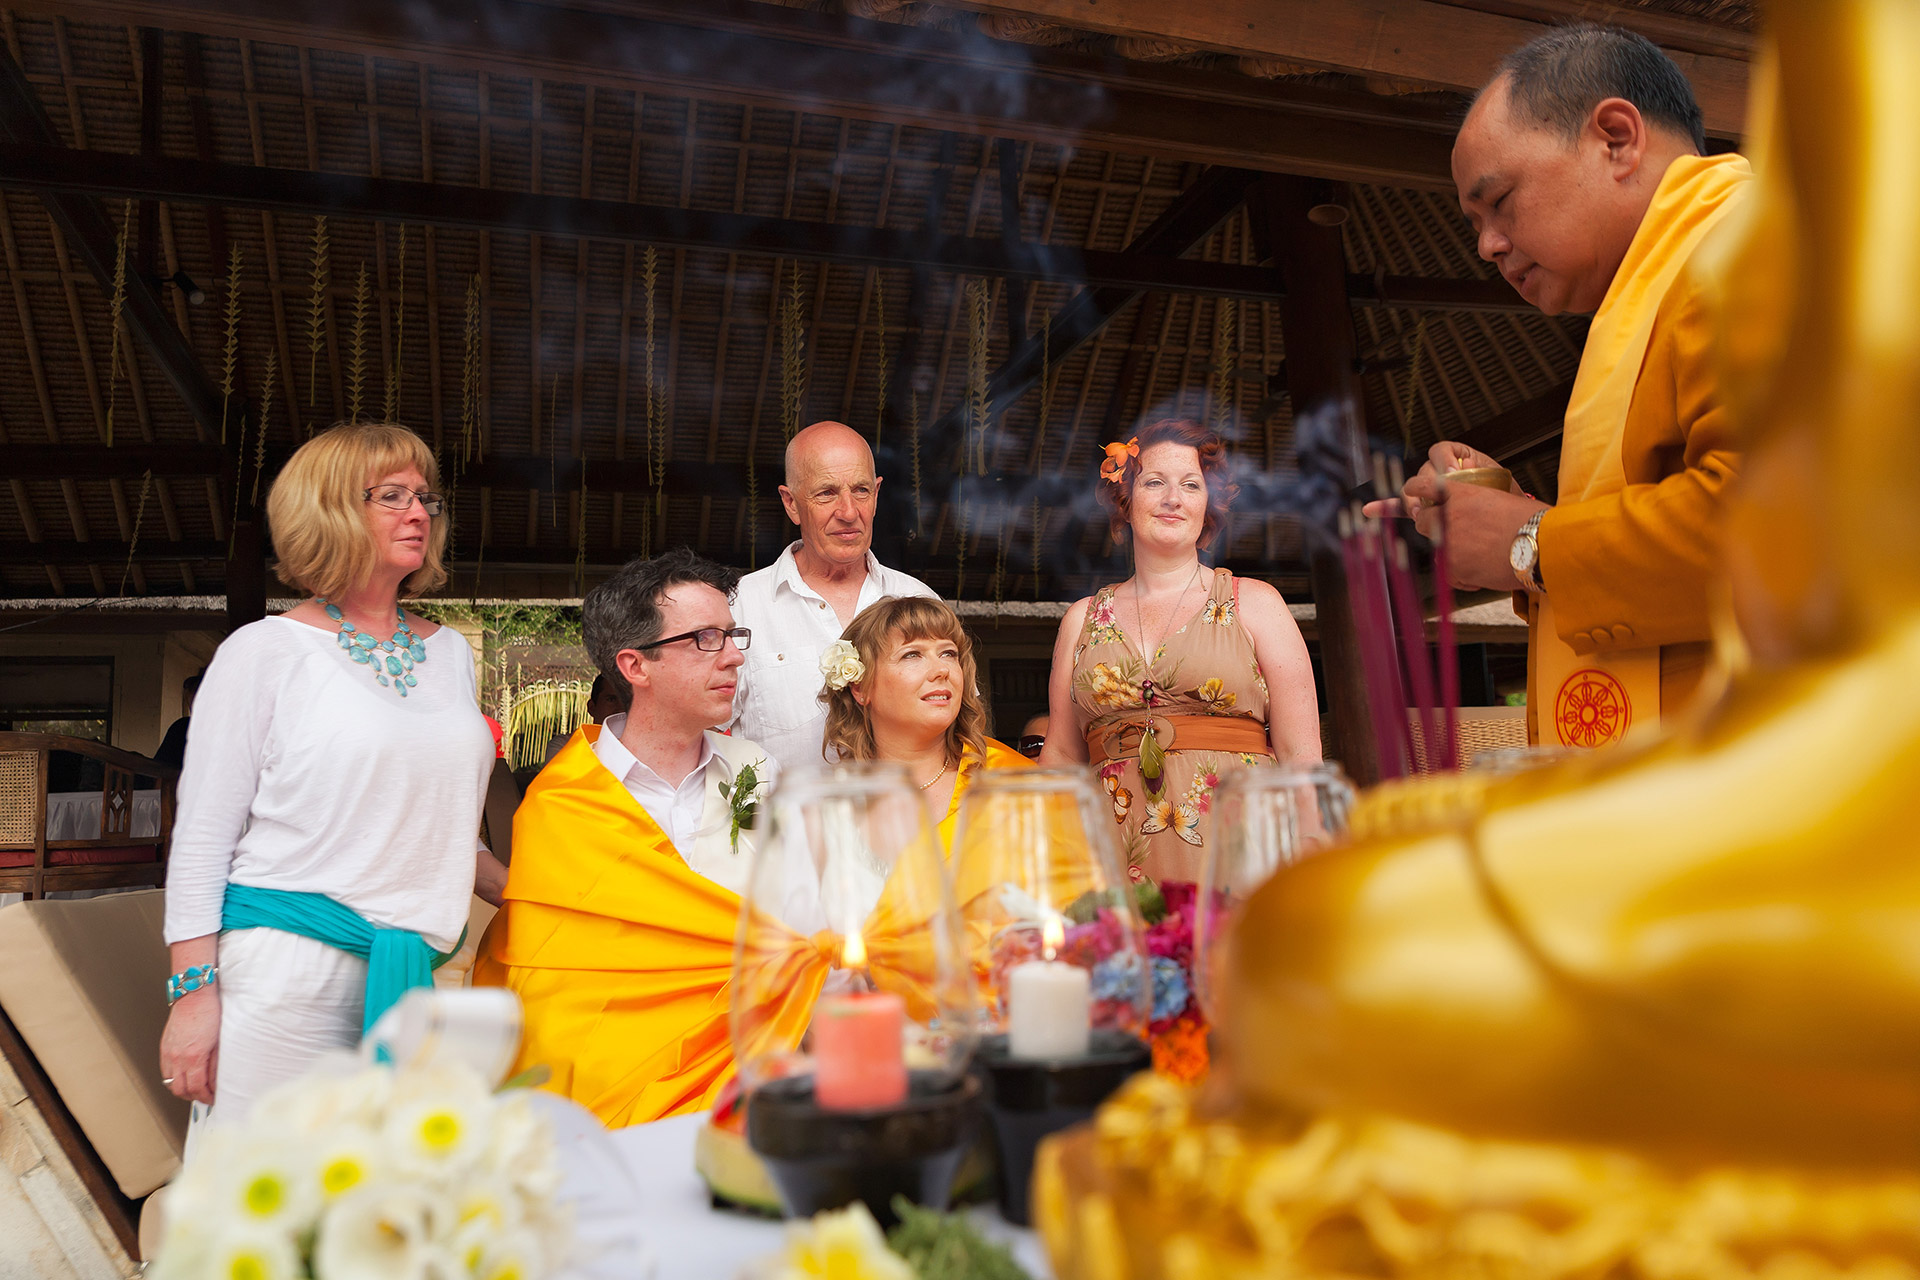 Buddhist weddings in Bali